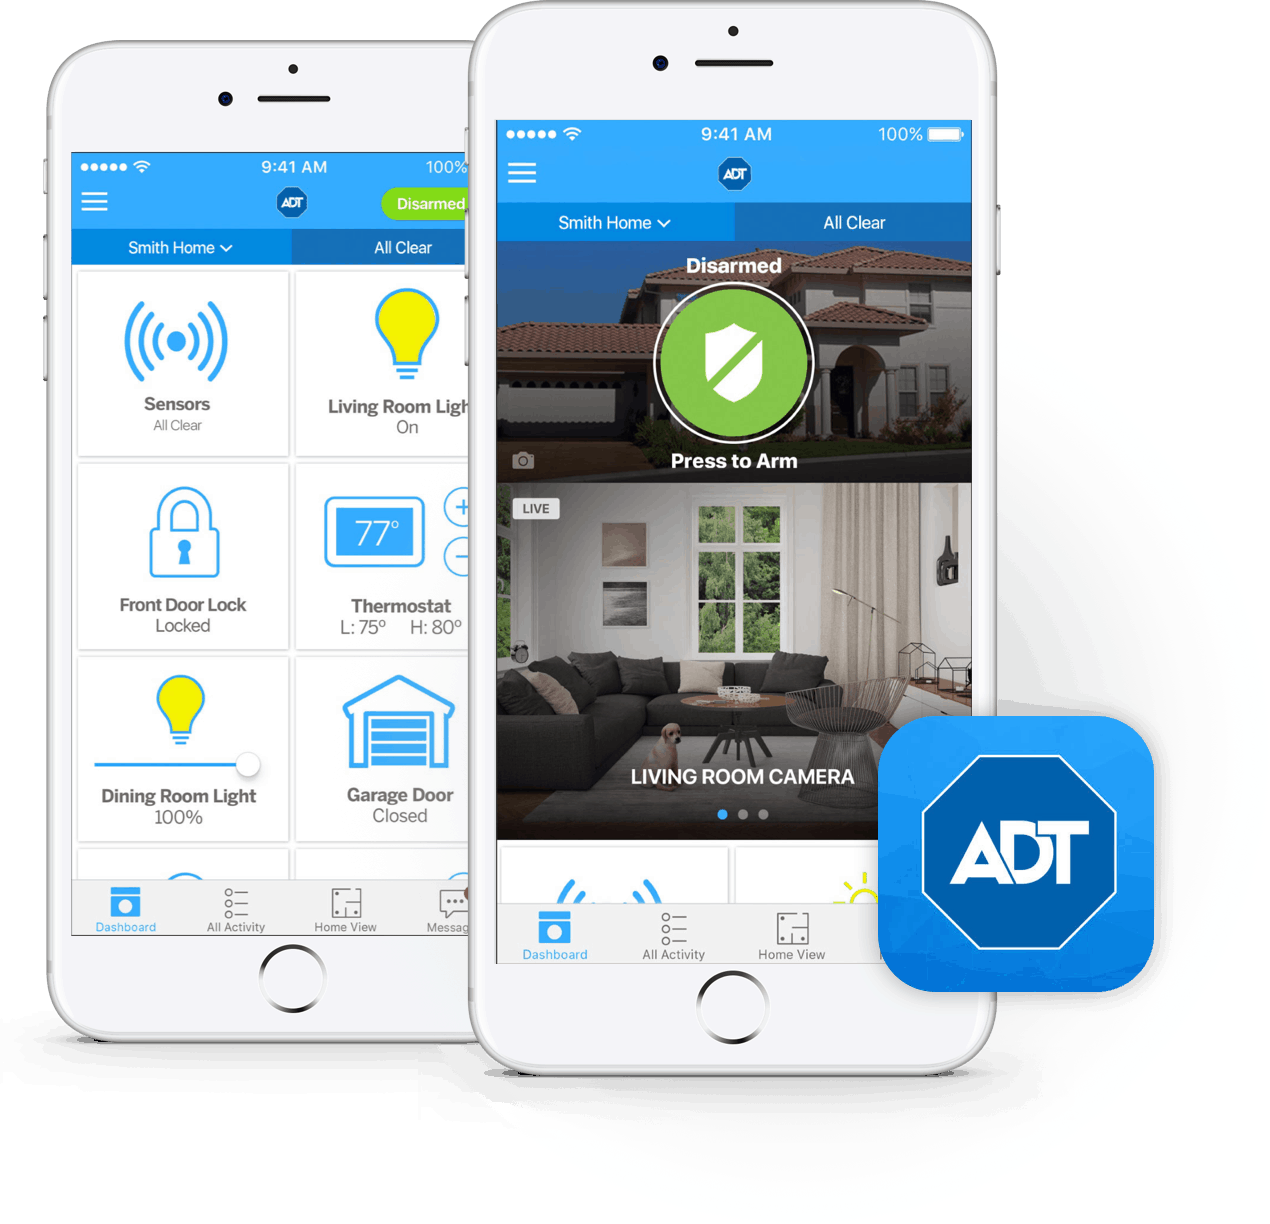 Adt Home Security Systems >> Xfinity Home Security Vs Adt Home Security Which Is Best